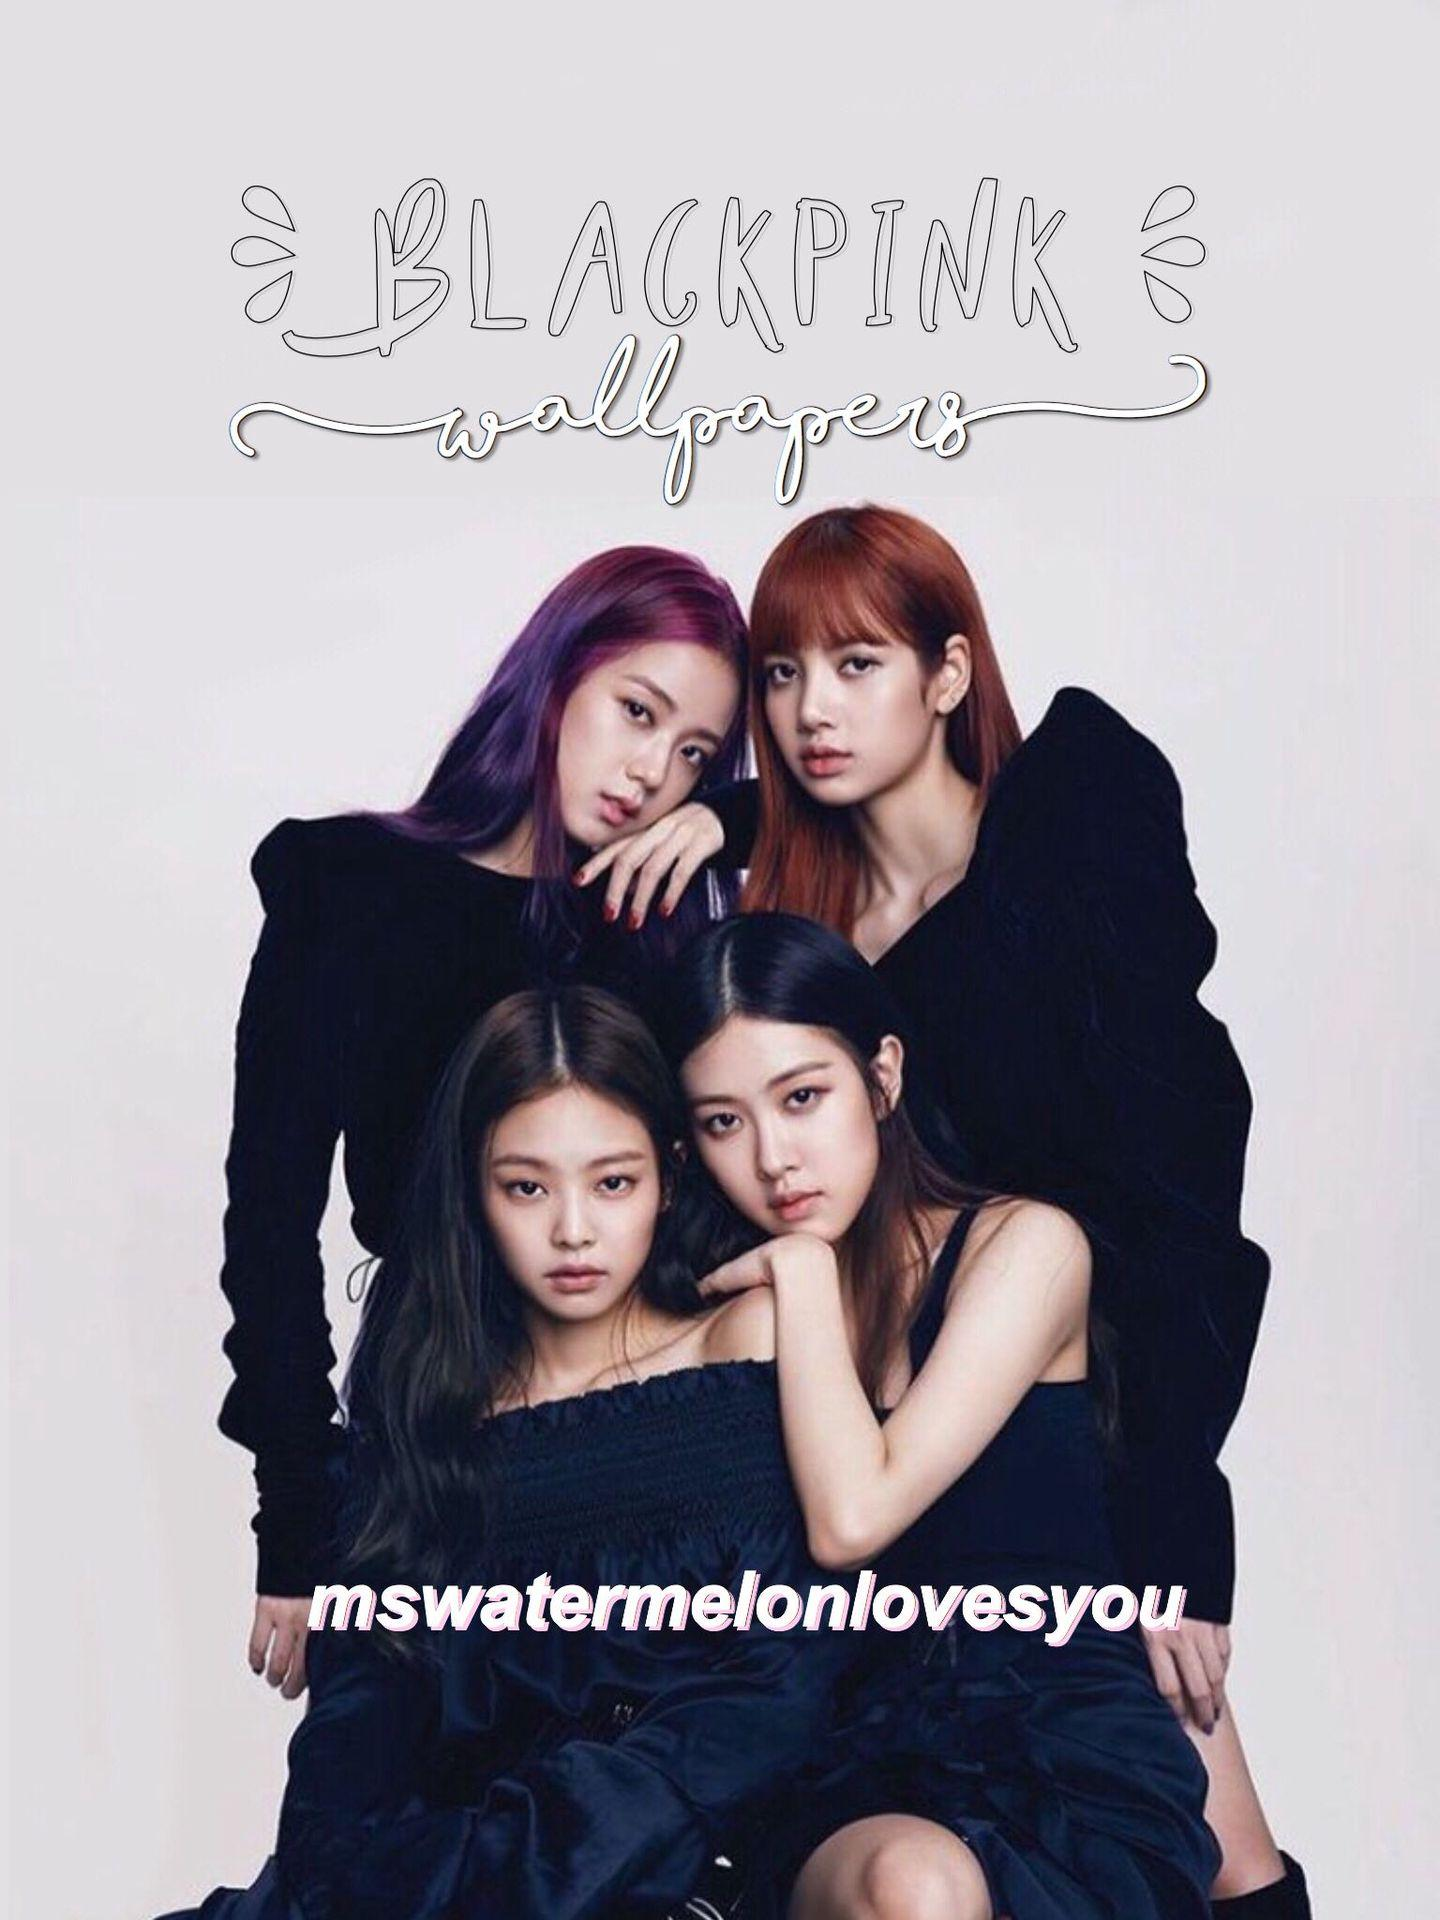 HIATUS] blackpink wallpapers ❤ - thankyouu!! - Wattpad